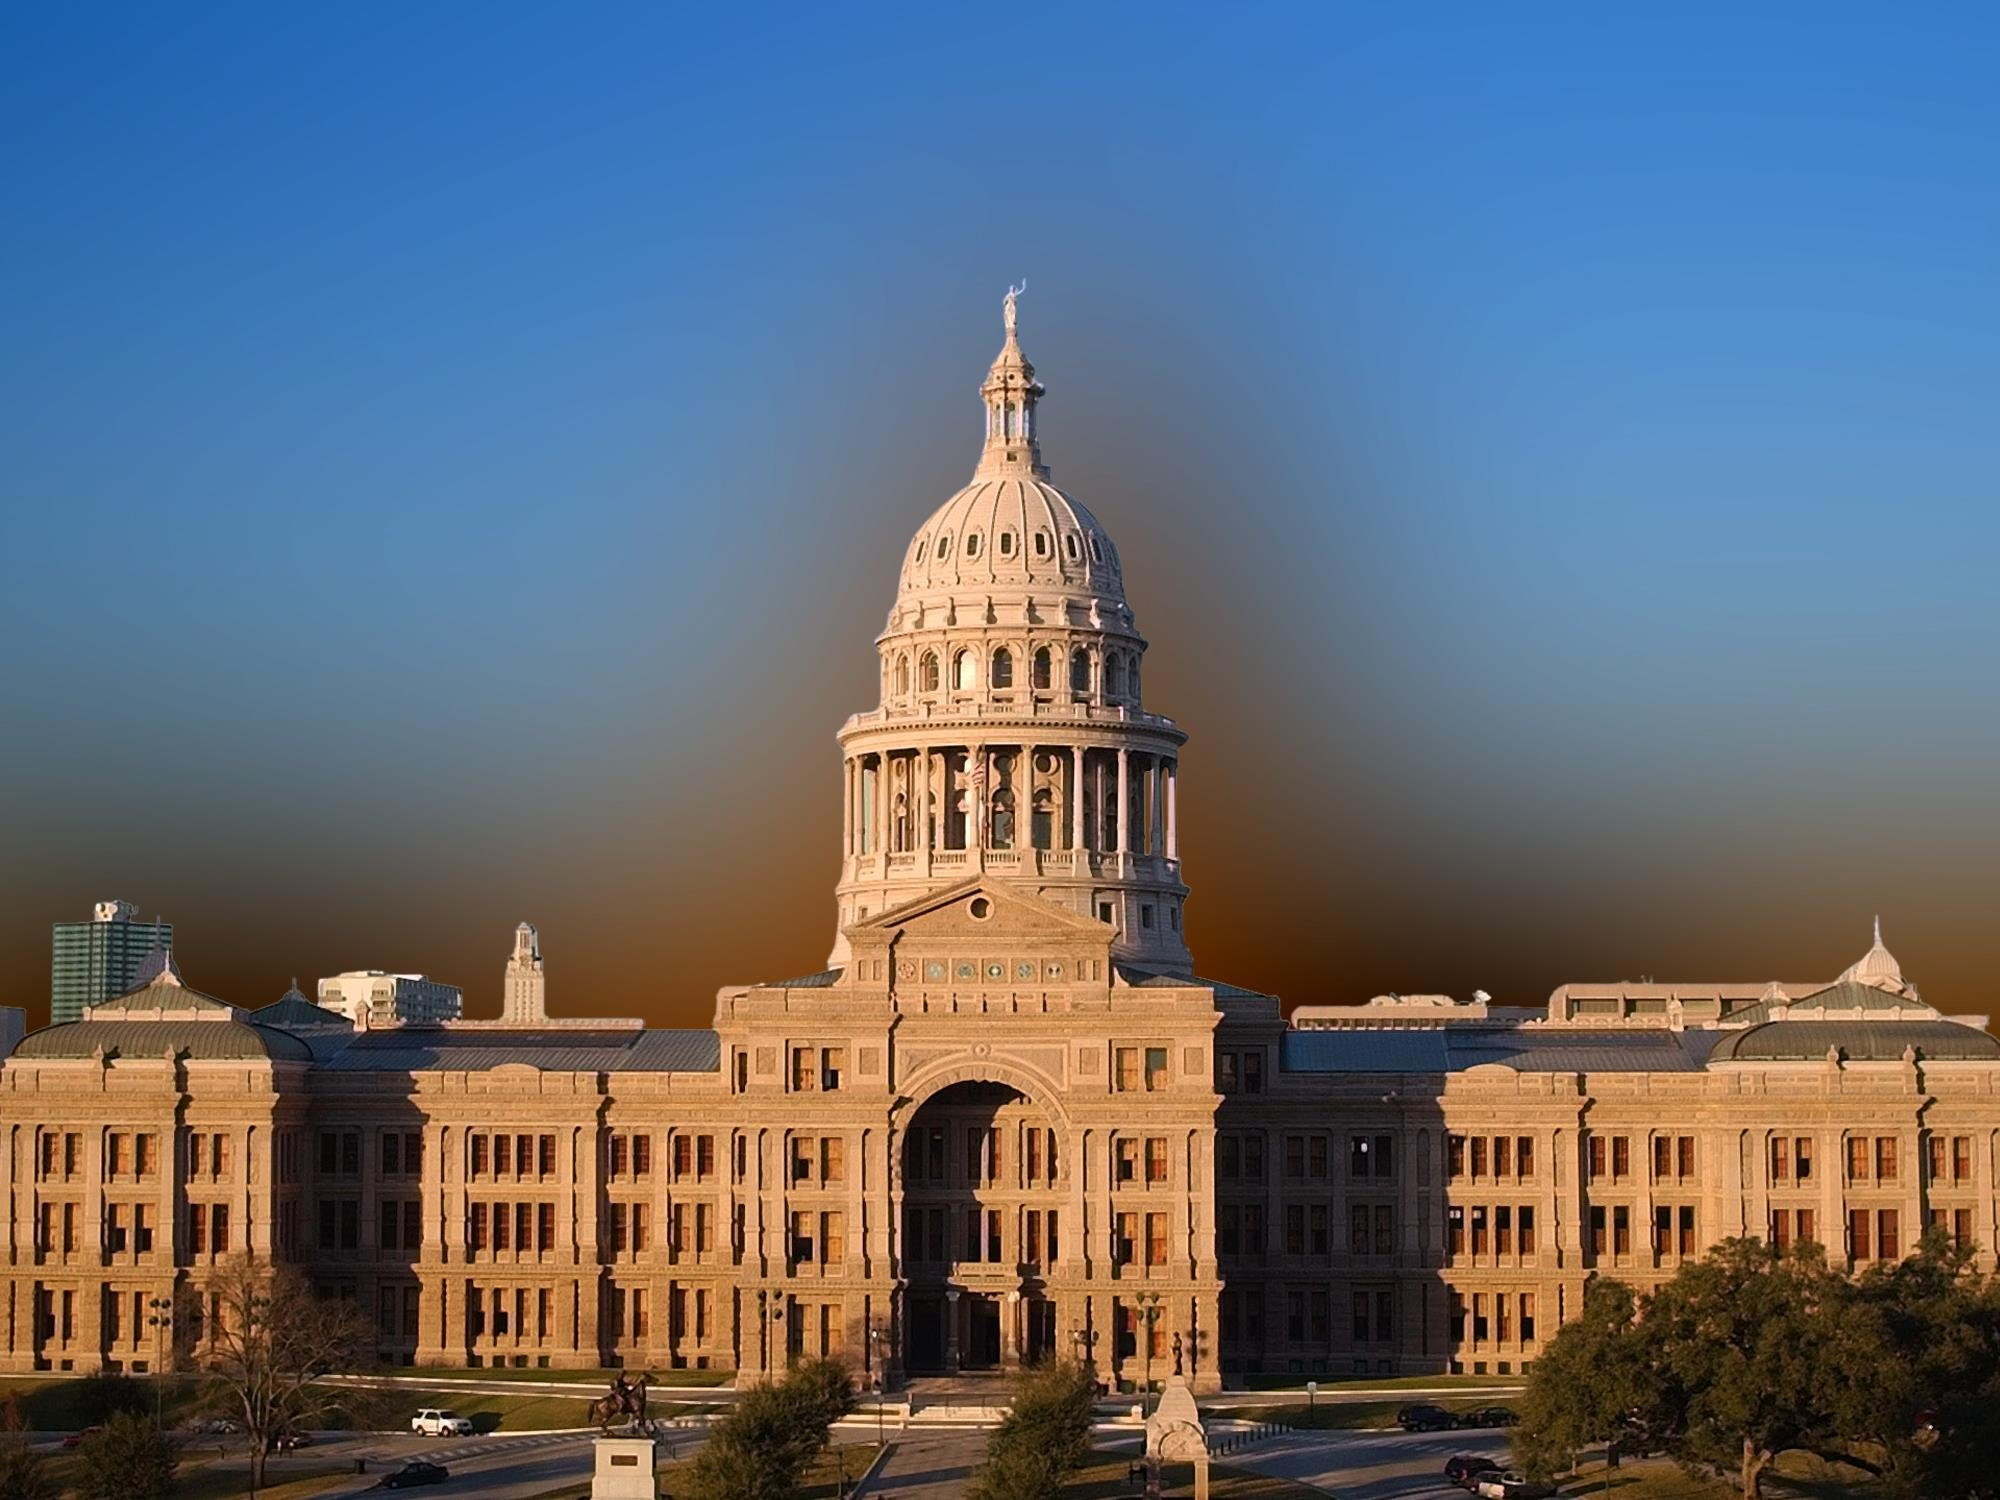 Texas lawmakers are poised to vote on a bill that would allow adoption agencies to turn away potential parents they find objectionable on religious grounds. (AP)